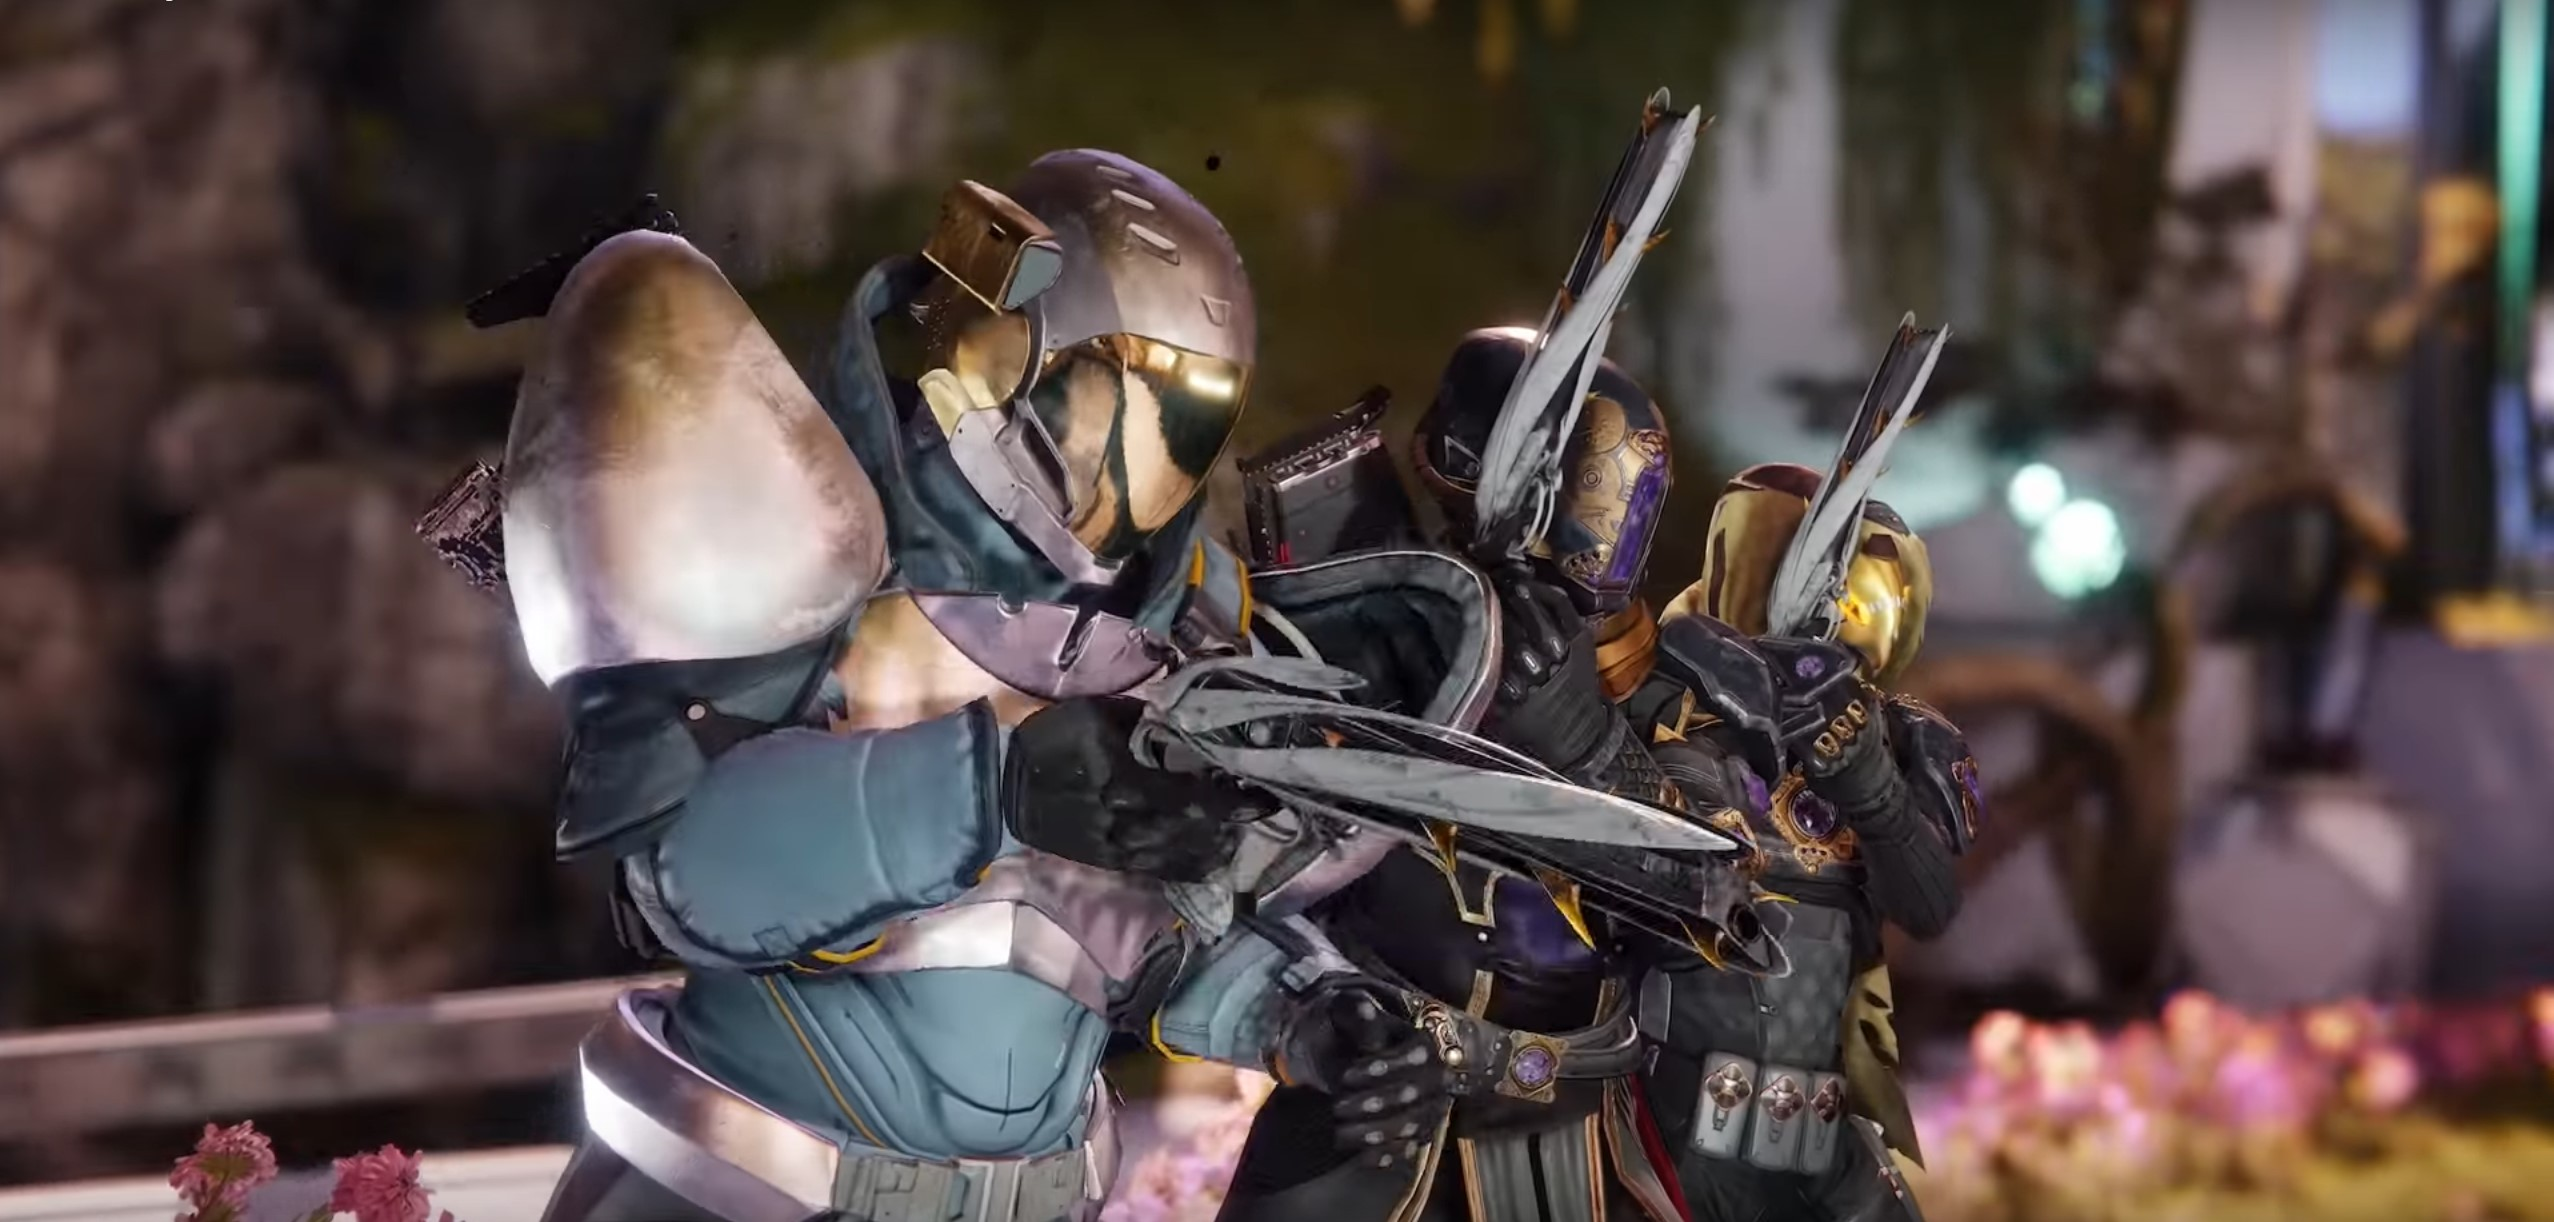 Destiny 2: Every Hive Crystal in Will of the Thousands Strike for Lumina